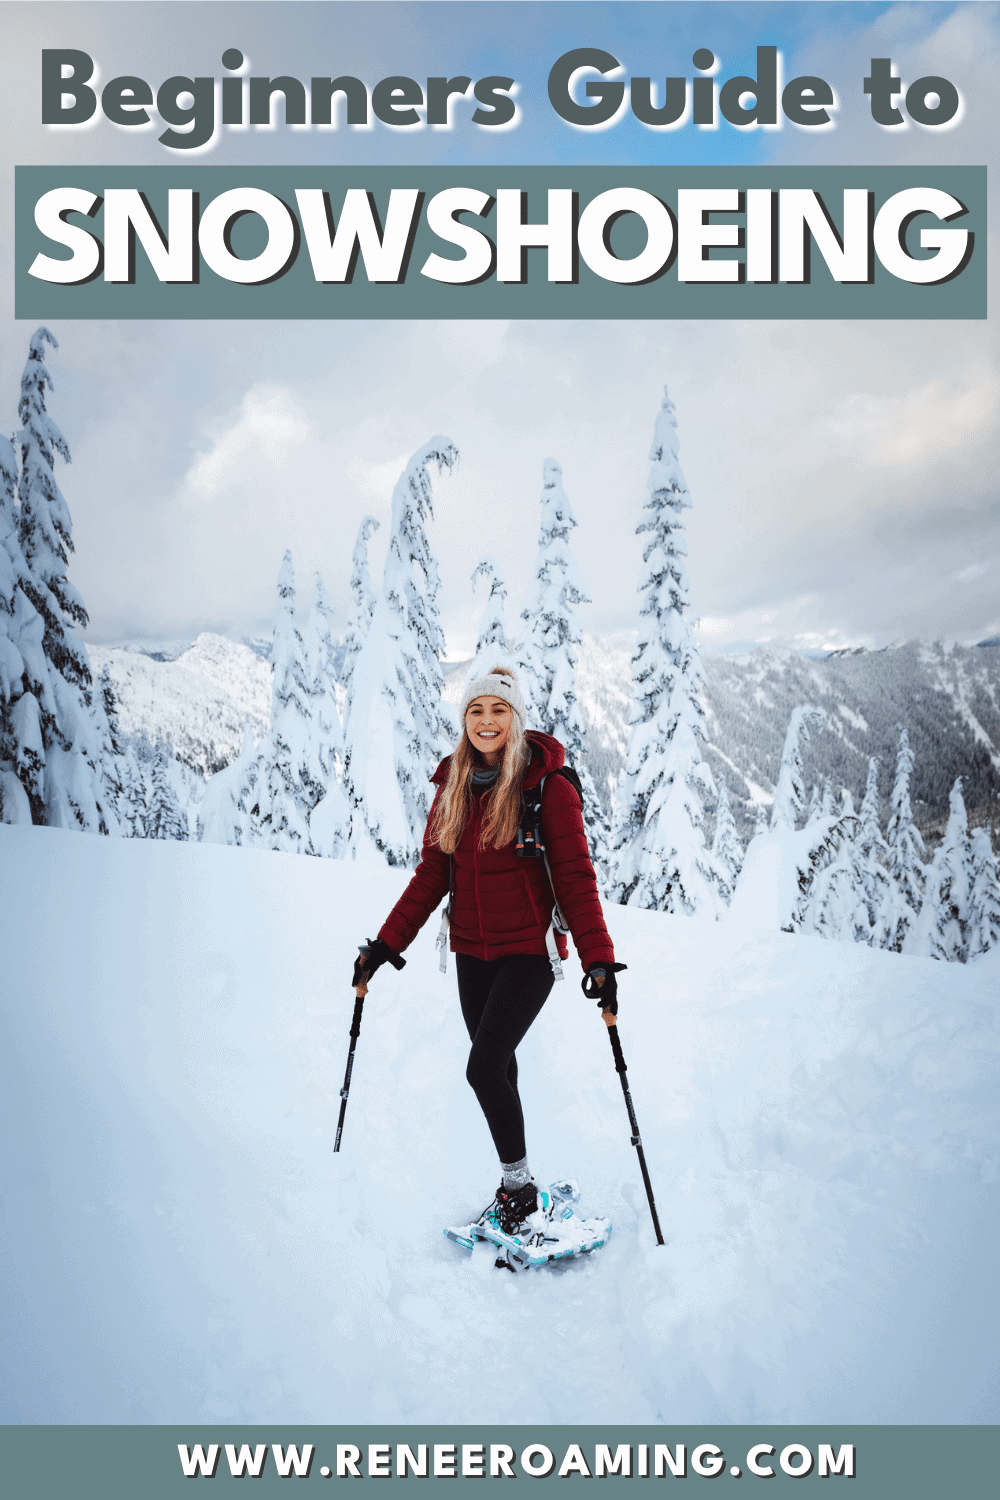 Snowshoeing Tips For Beginners: How To Snowshoe For The First Time